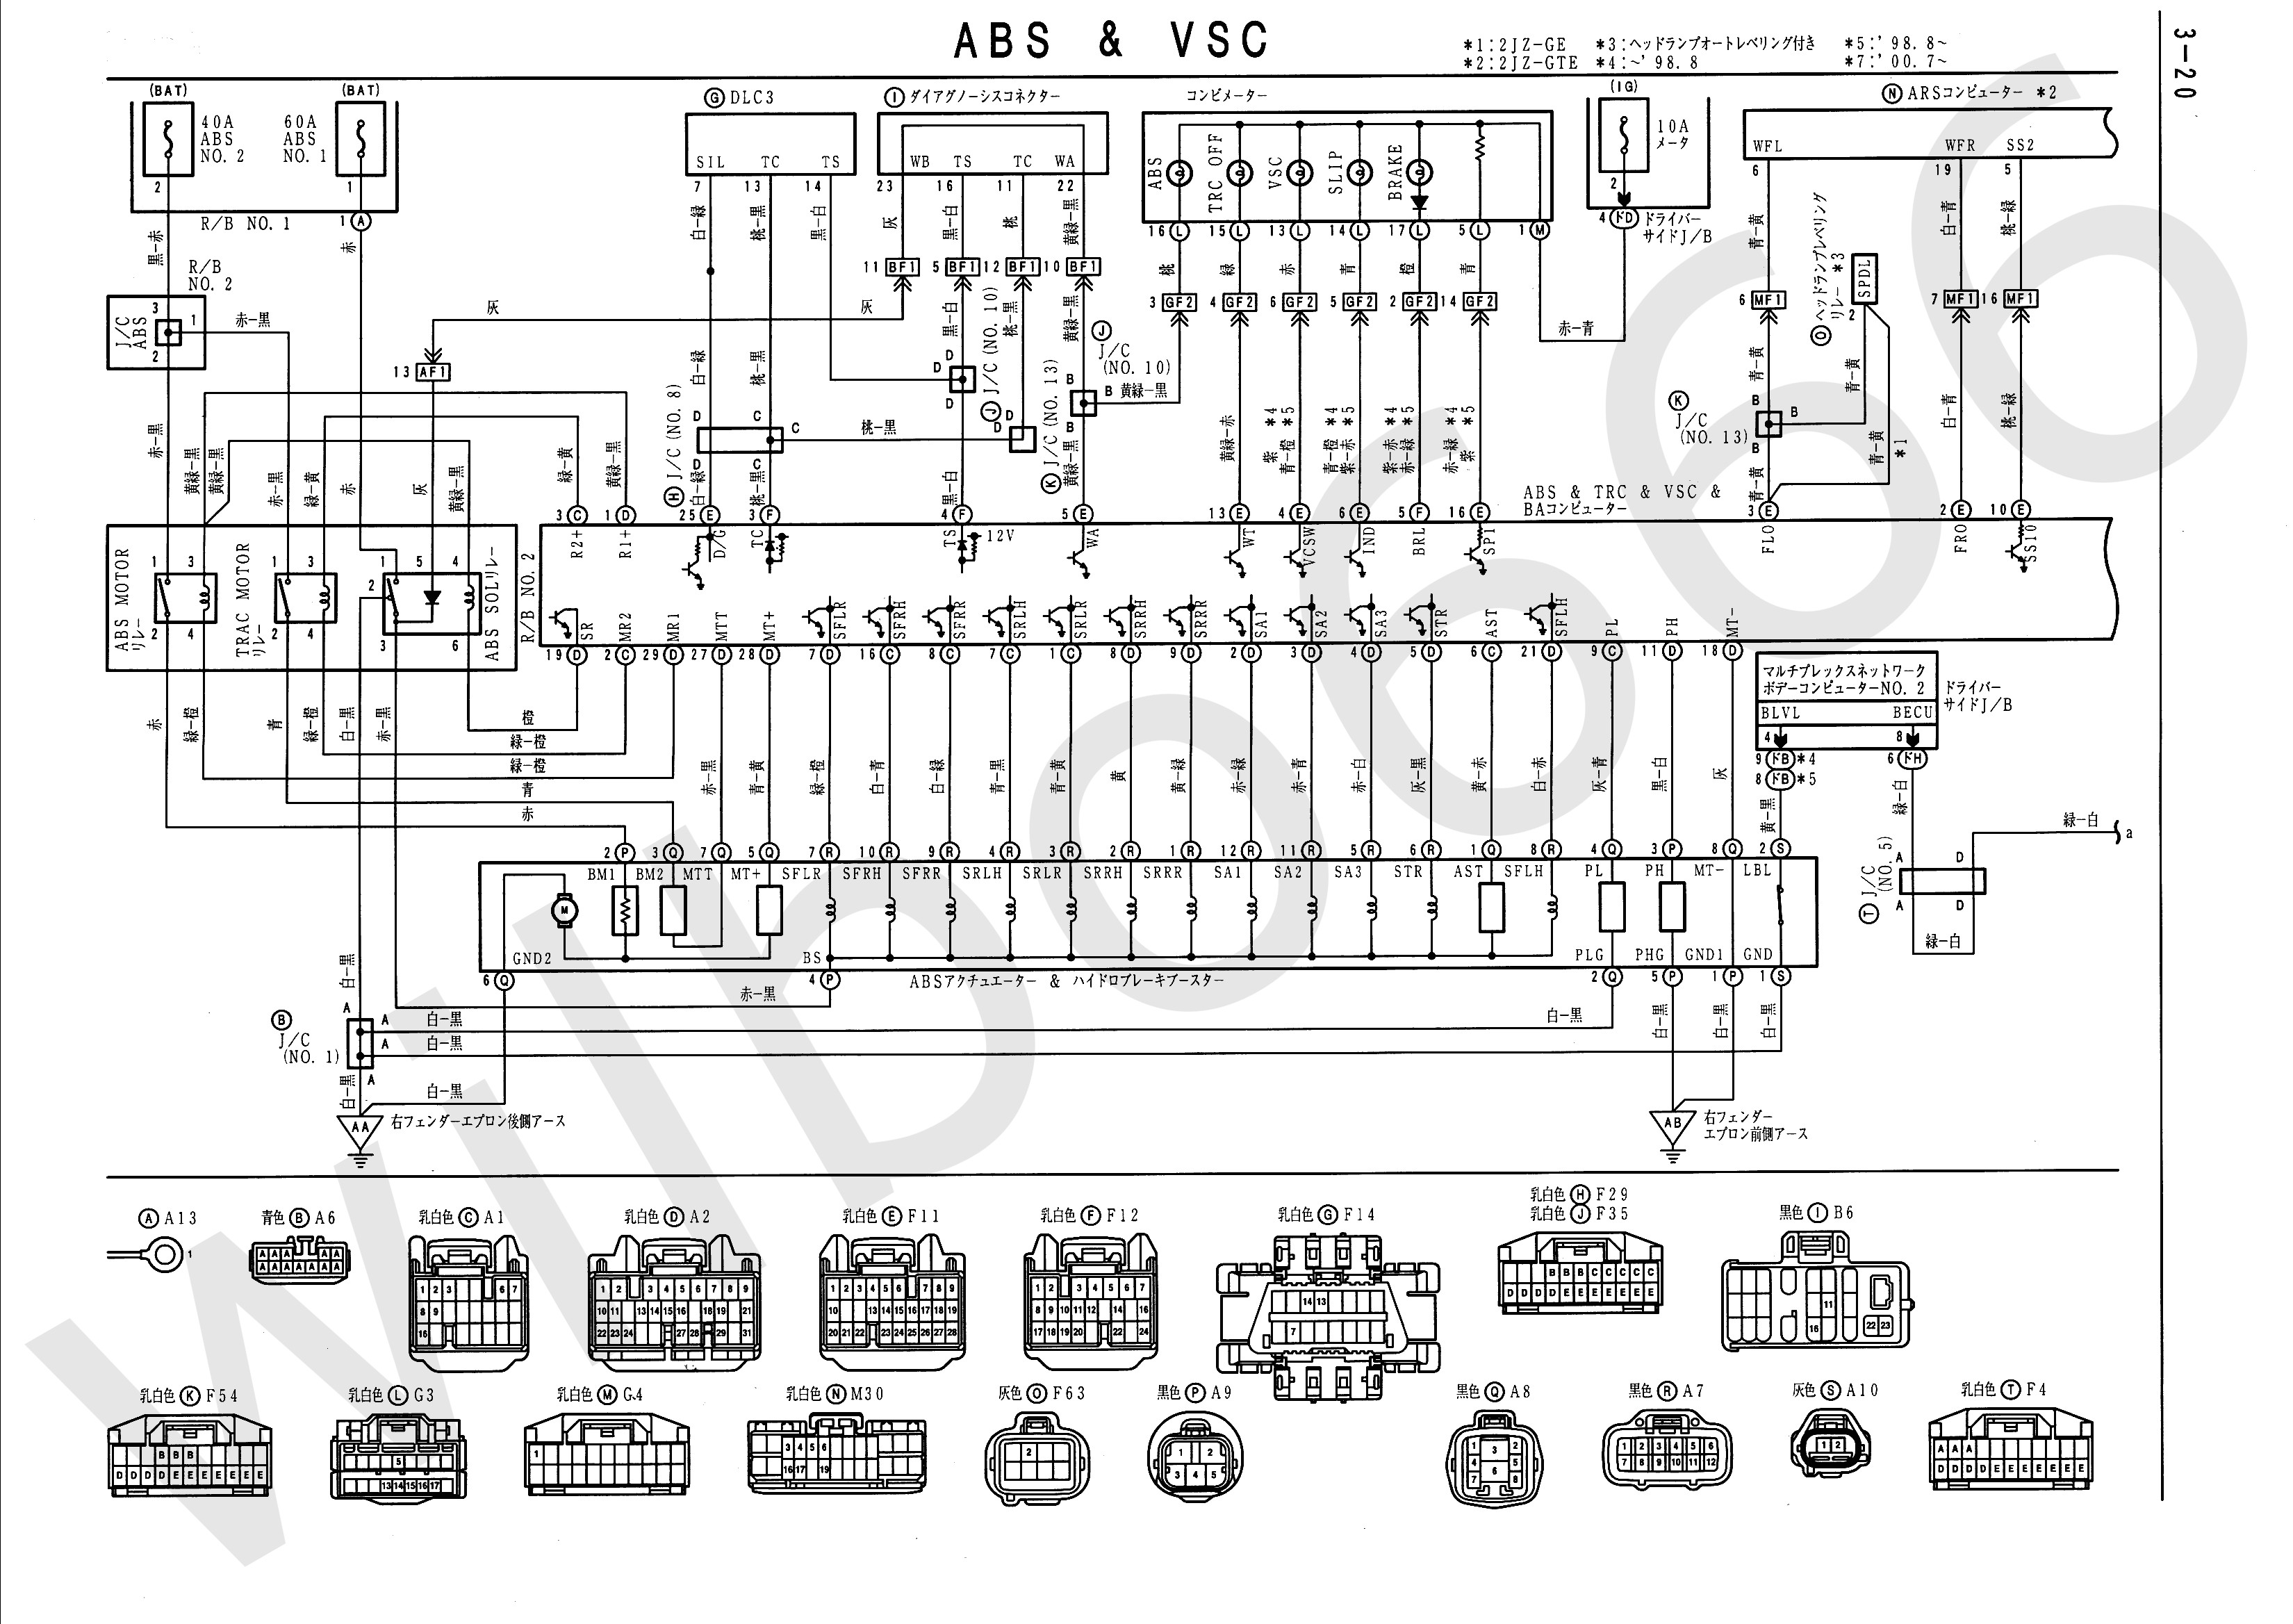 Daihatsu Hijet Wiring Diagram | #1 Wiring Diagram Source on